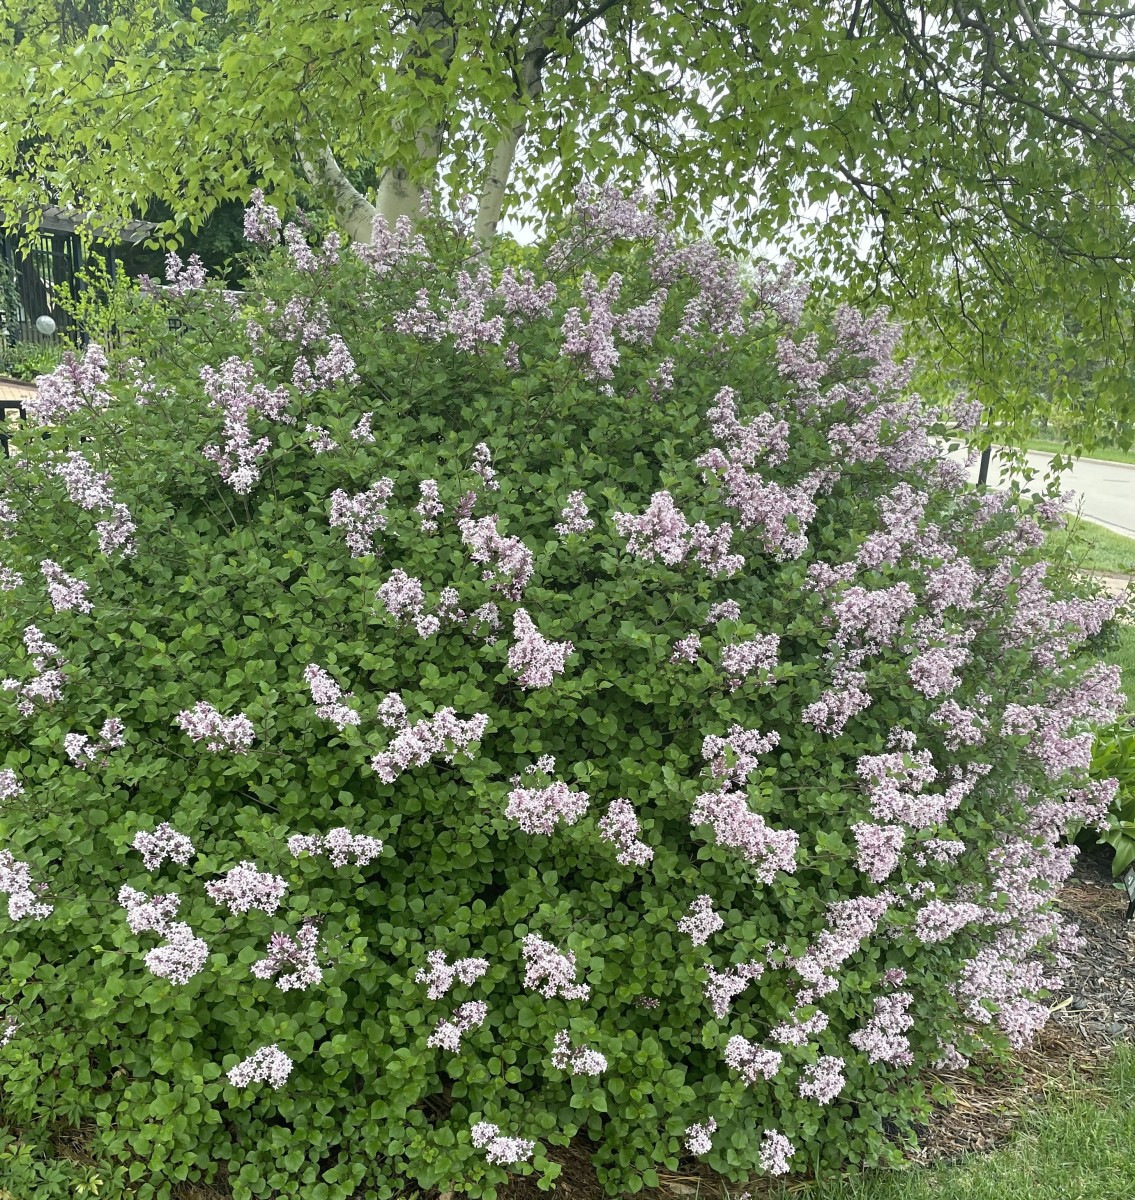 This article will provide you with all the information you need to grow and care for Korean lilac.